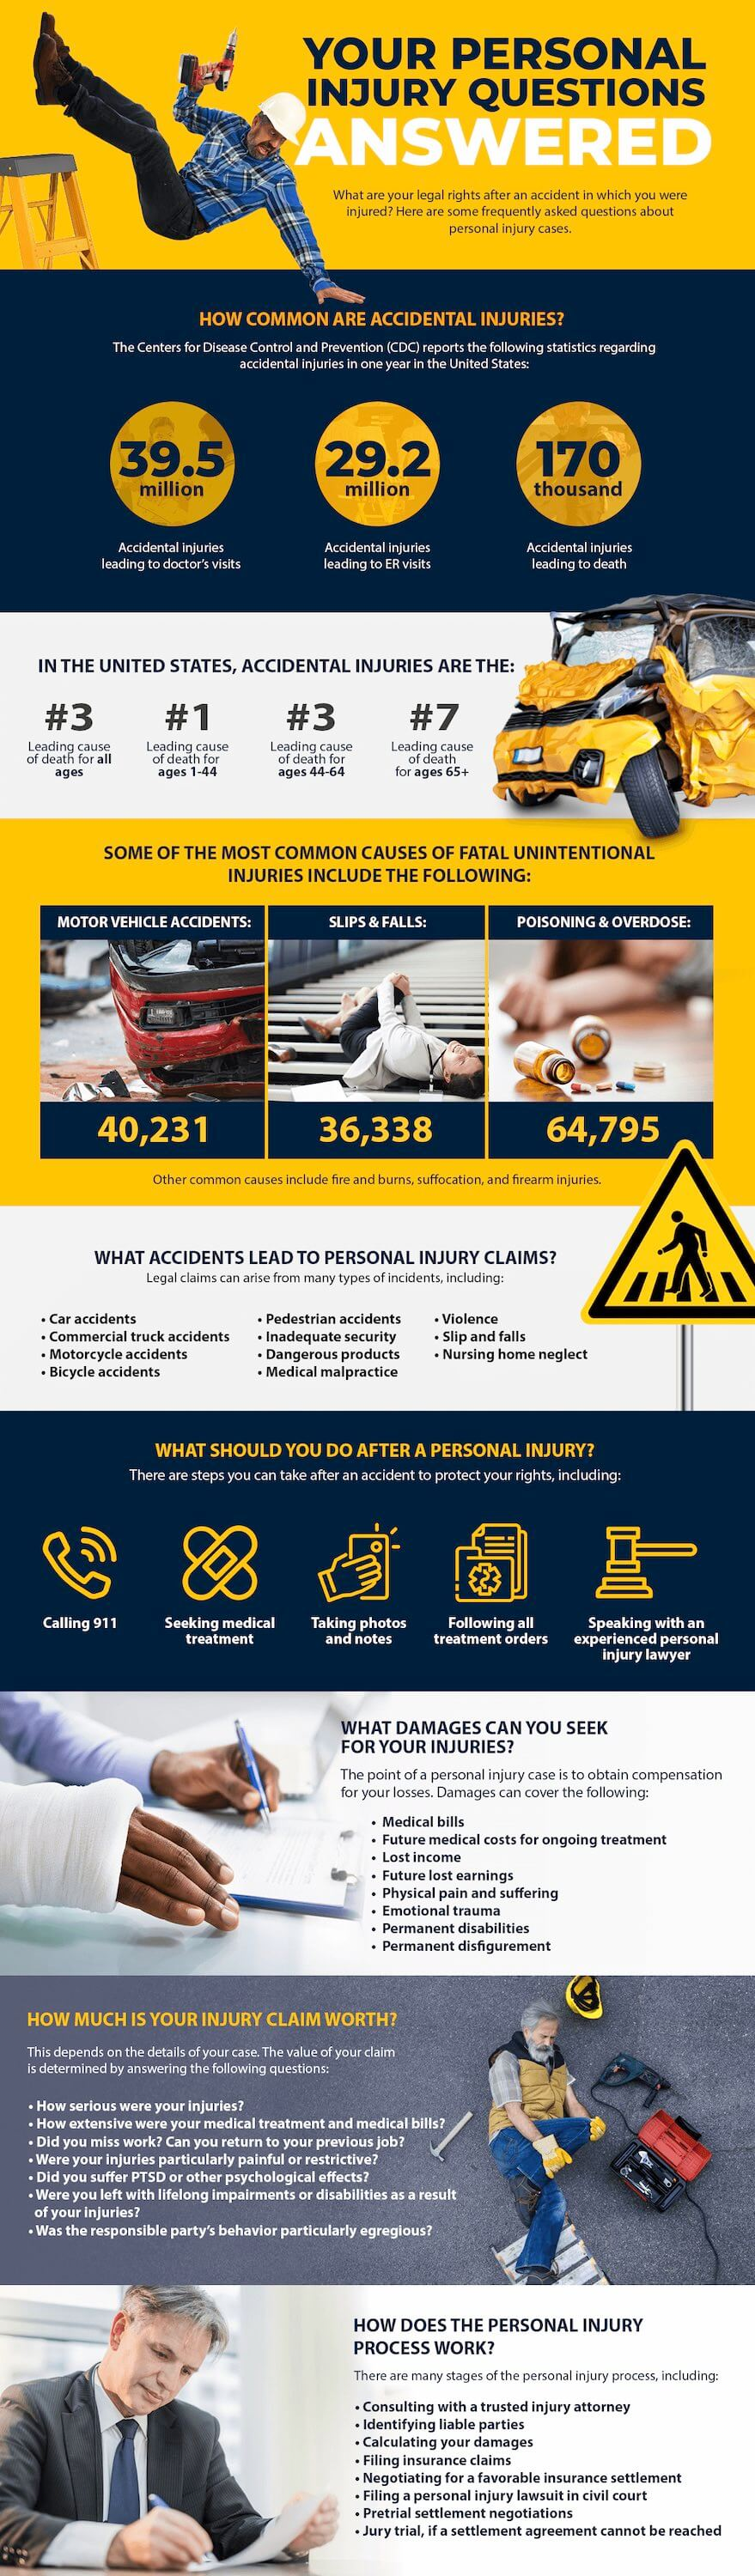 Your Personal Injury Questions, Answered